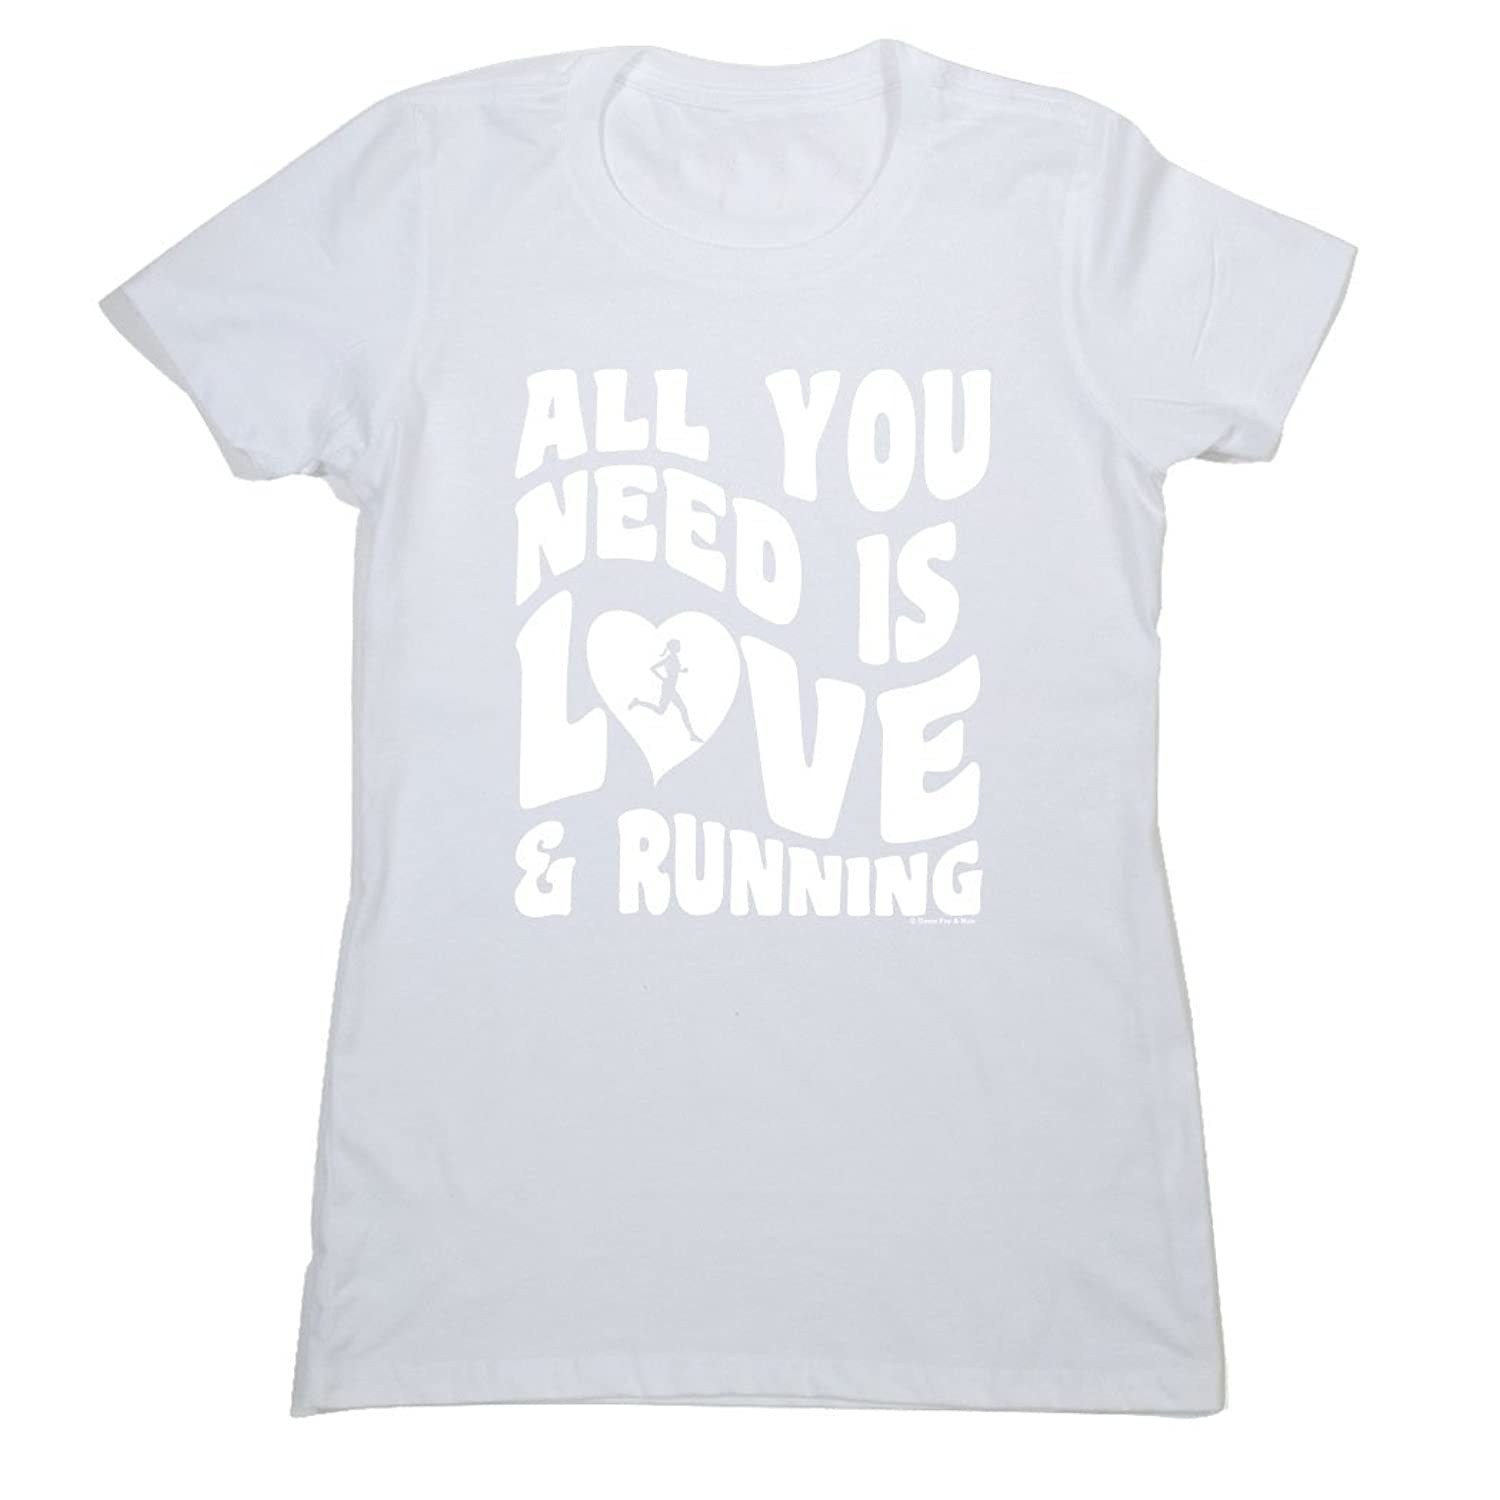 Women's Everyday Runners Tee - All You Need Is Love And Running